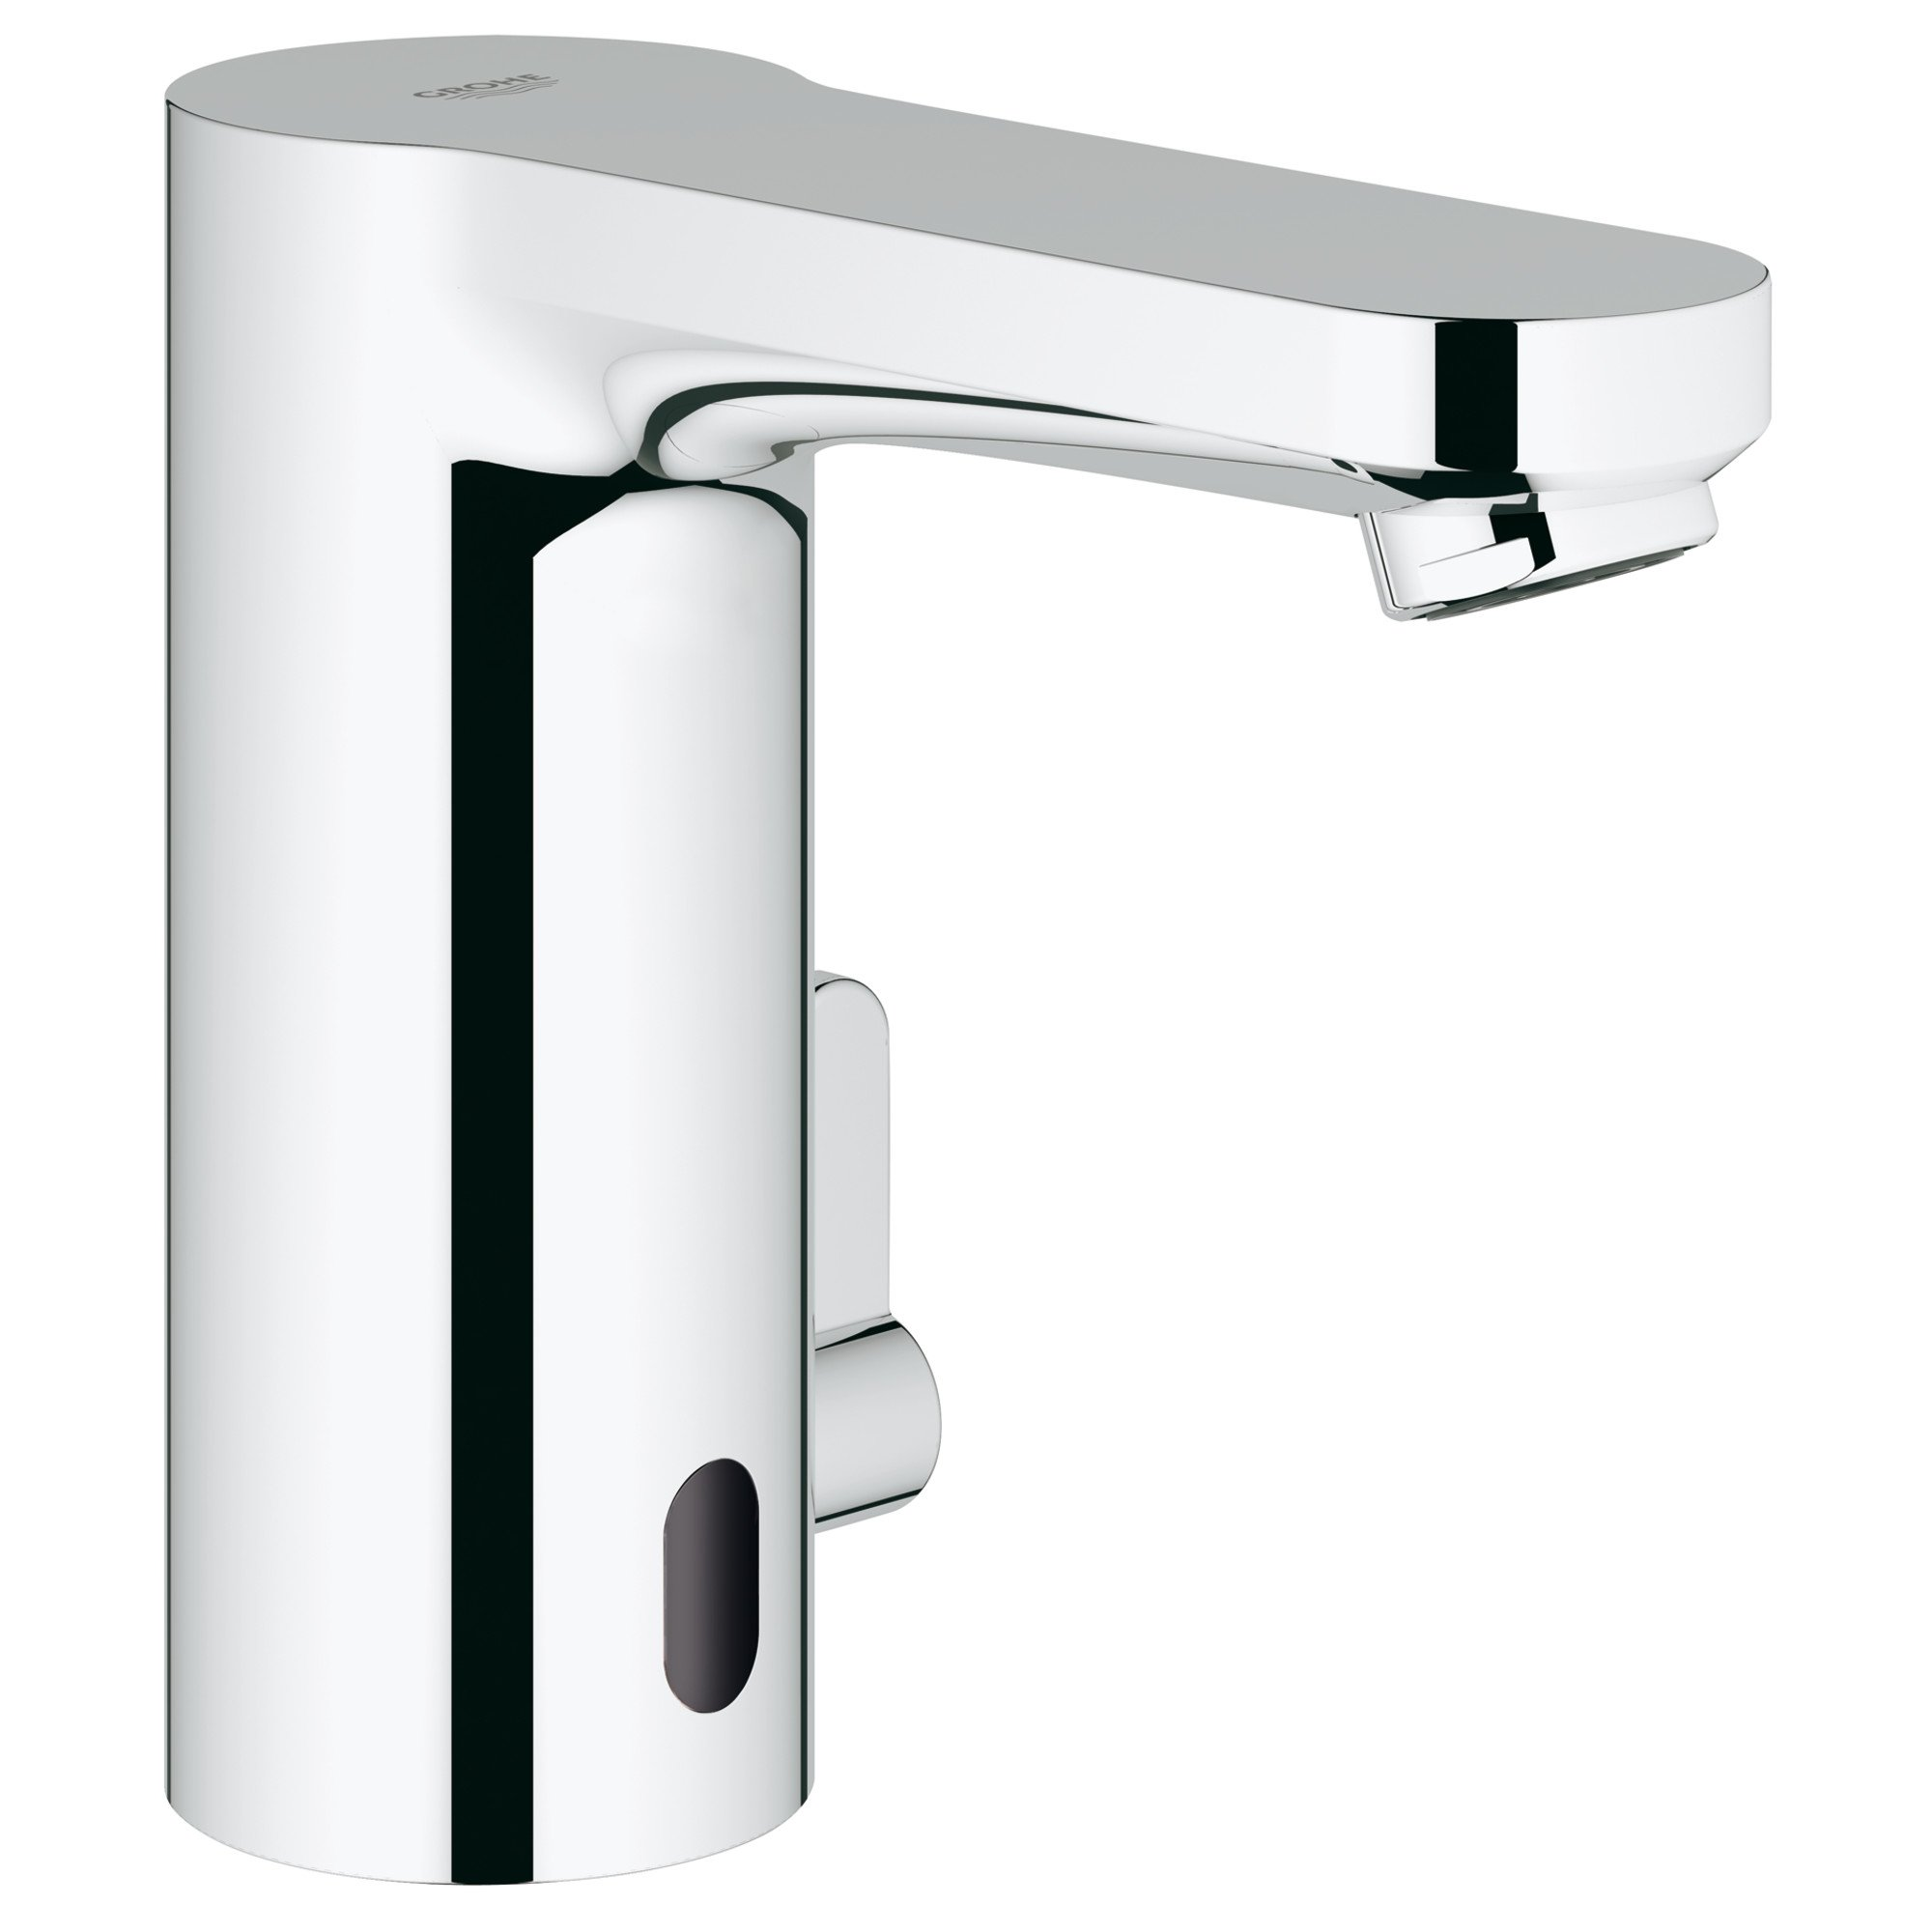 GROHE 36328000 Eurosmart Cosmopolitan E Singel Hole Touchless Electronic Bathroom Faucet With Temperature Control Lever, Starlight Chrome